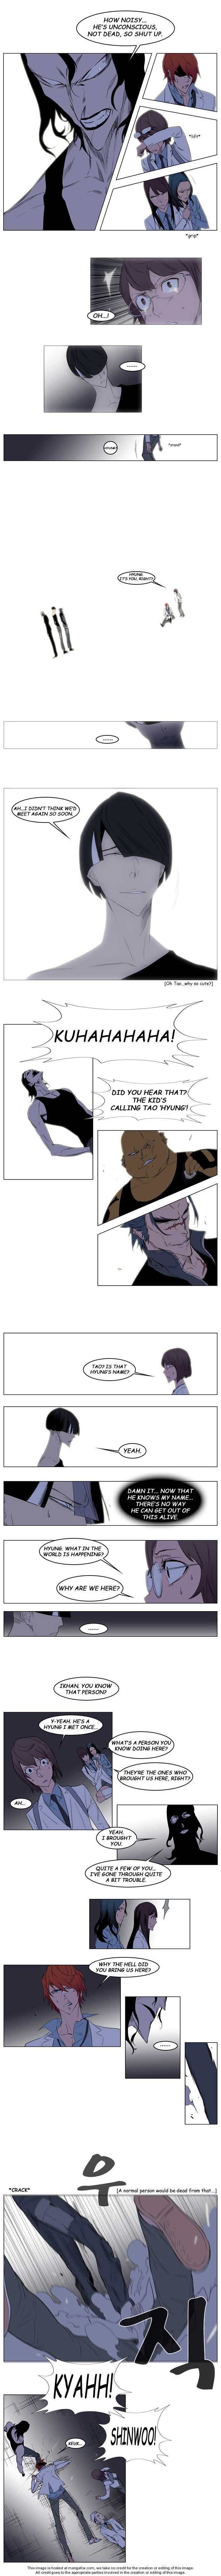 Noblesse 126 Page 2